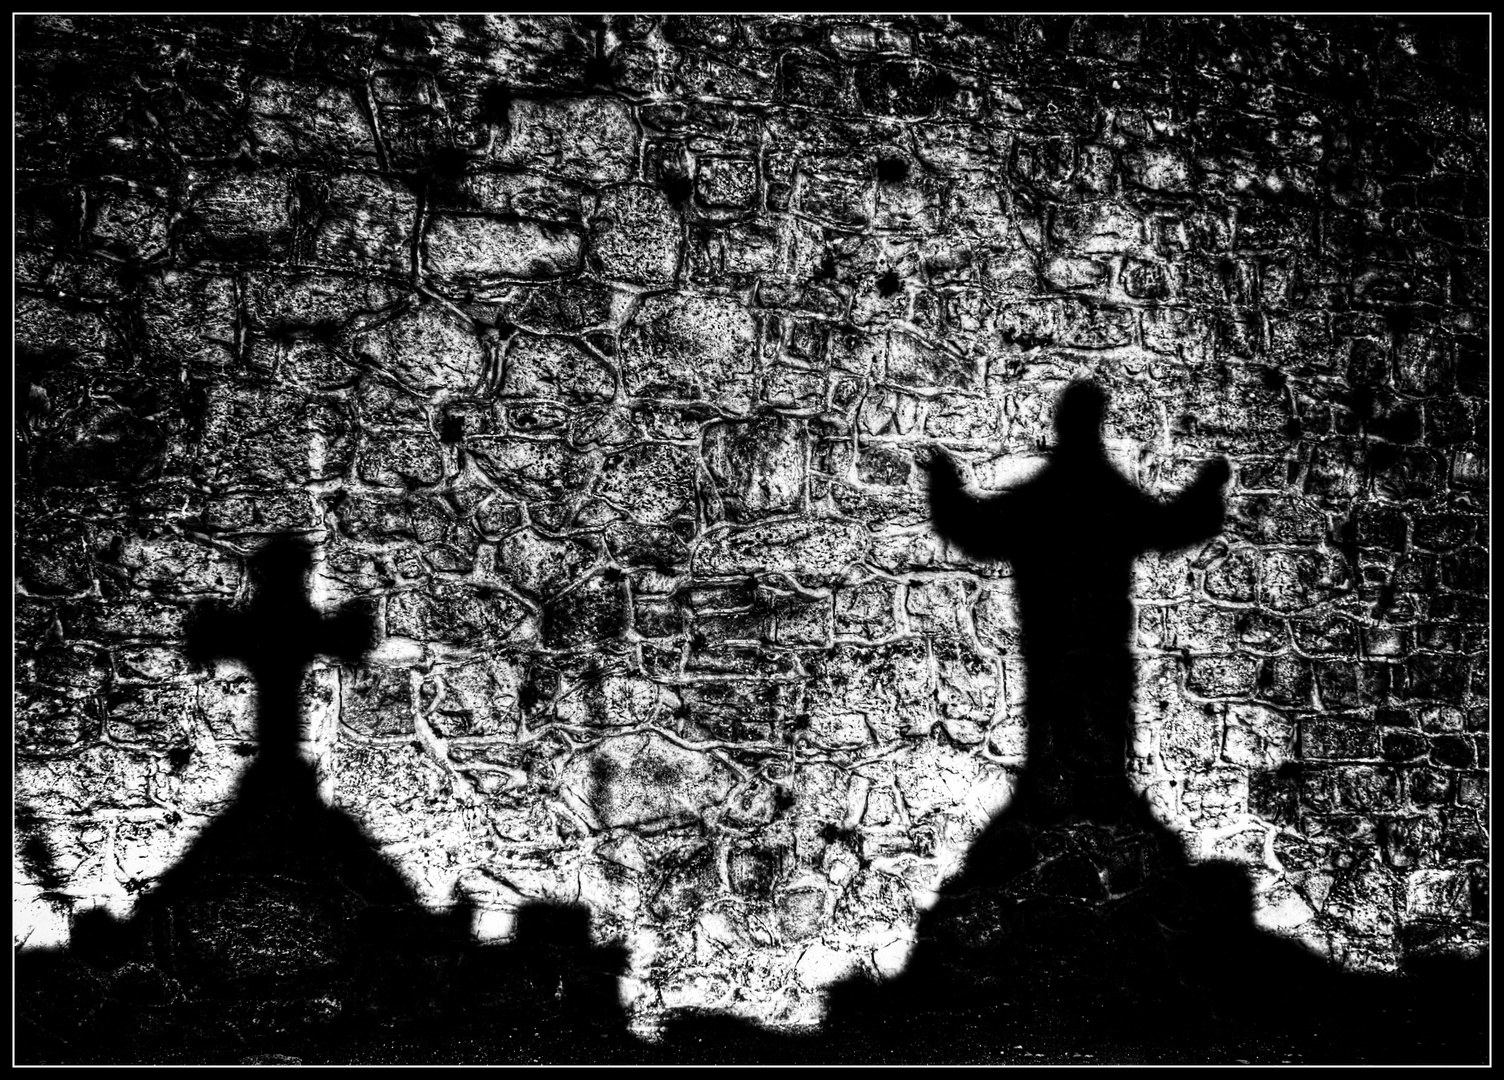 Shadows of the tombs